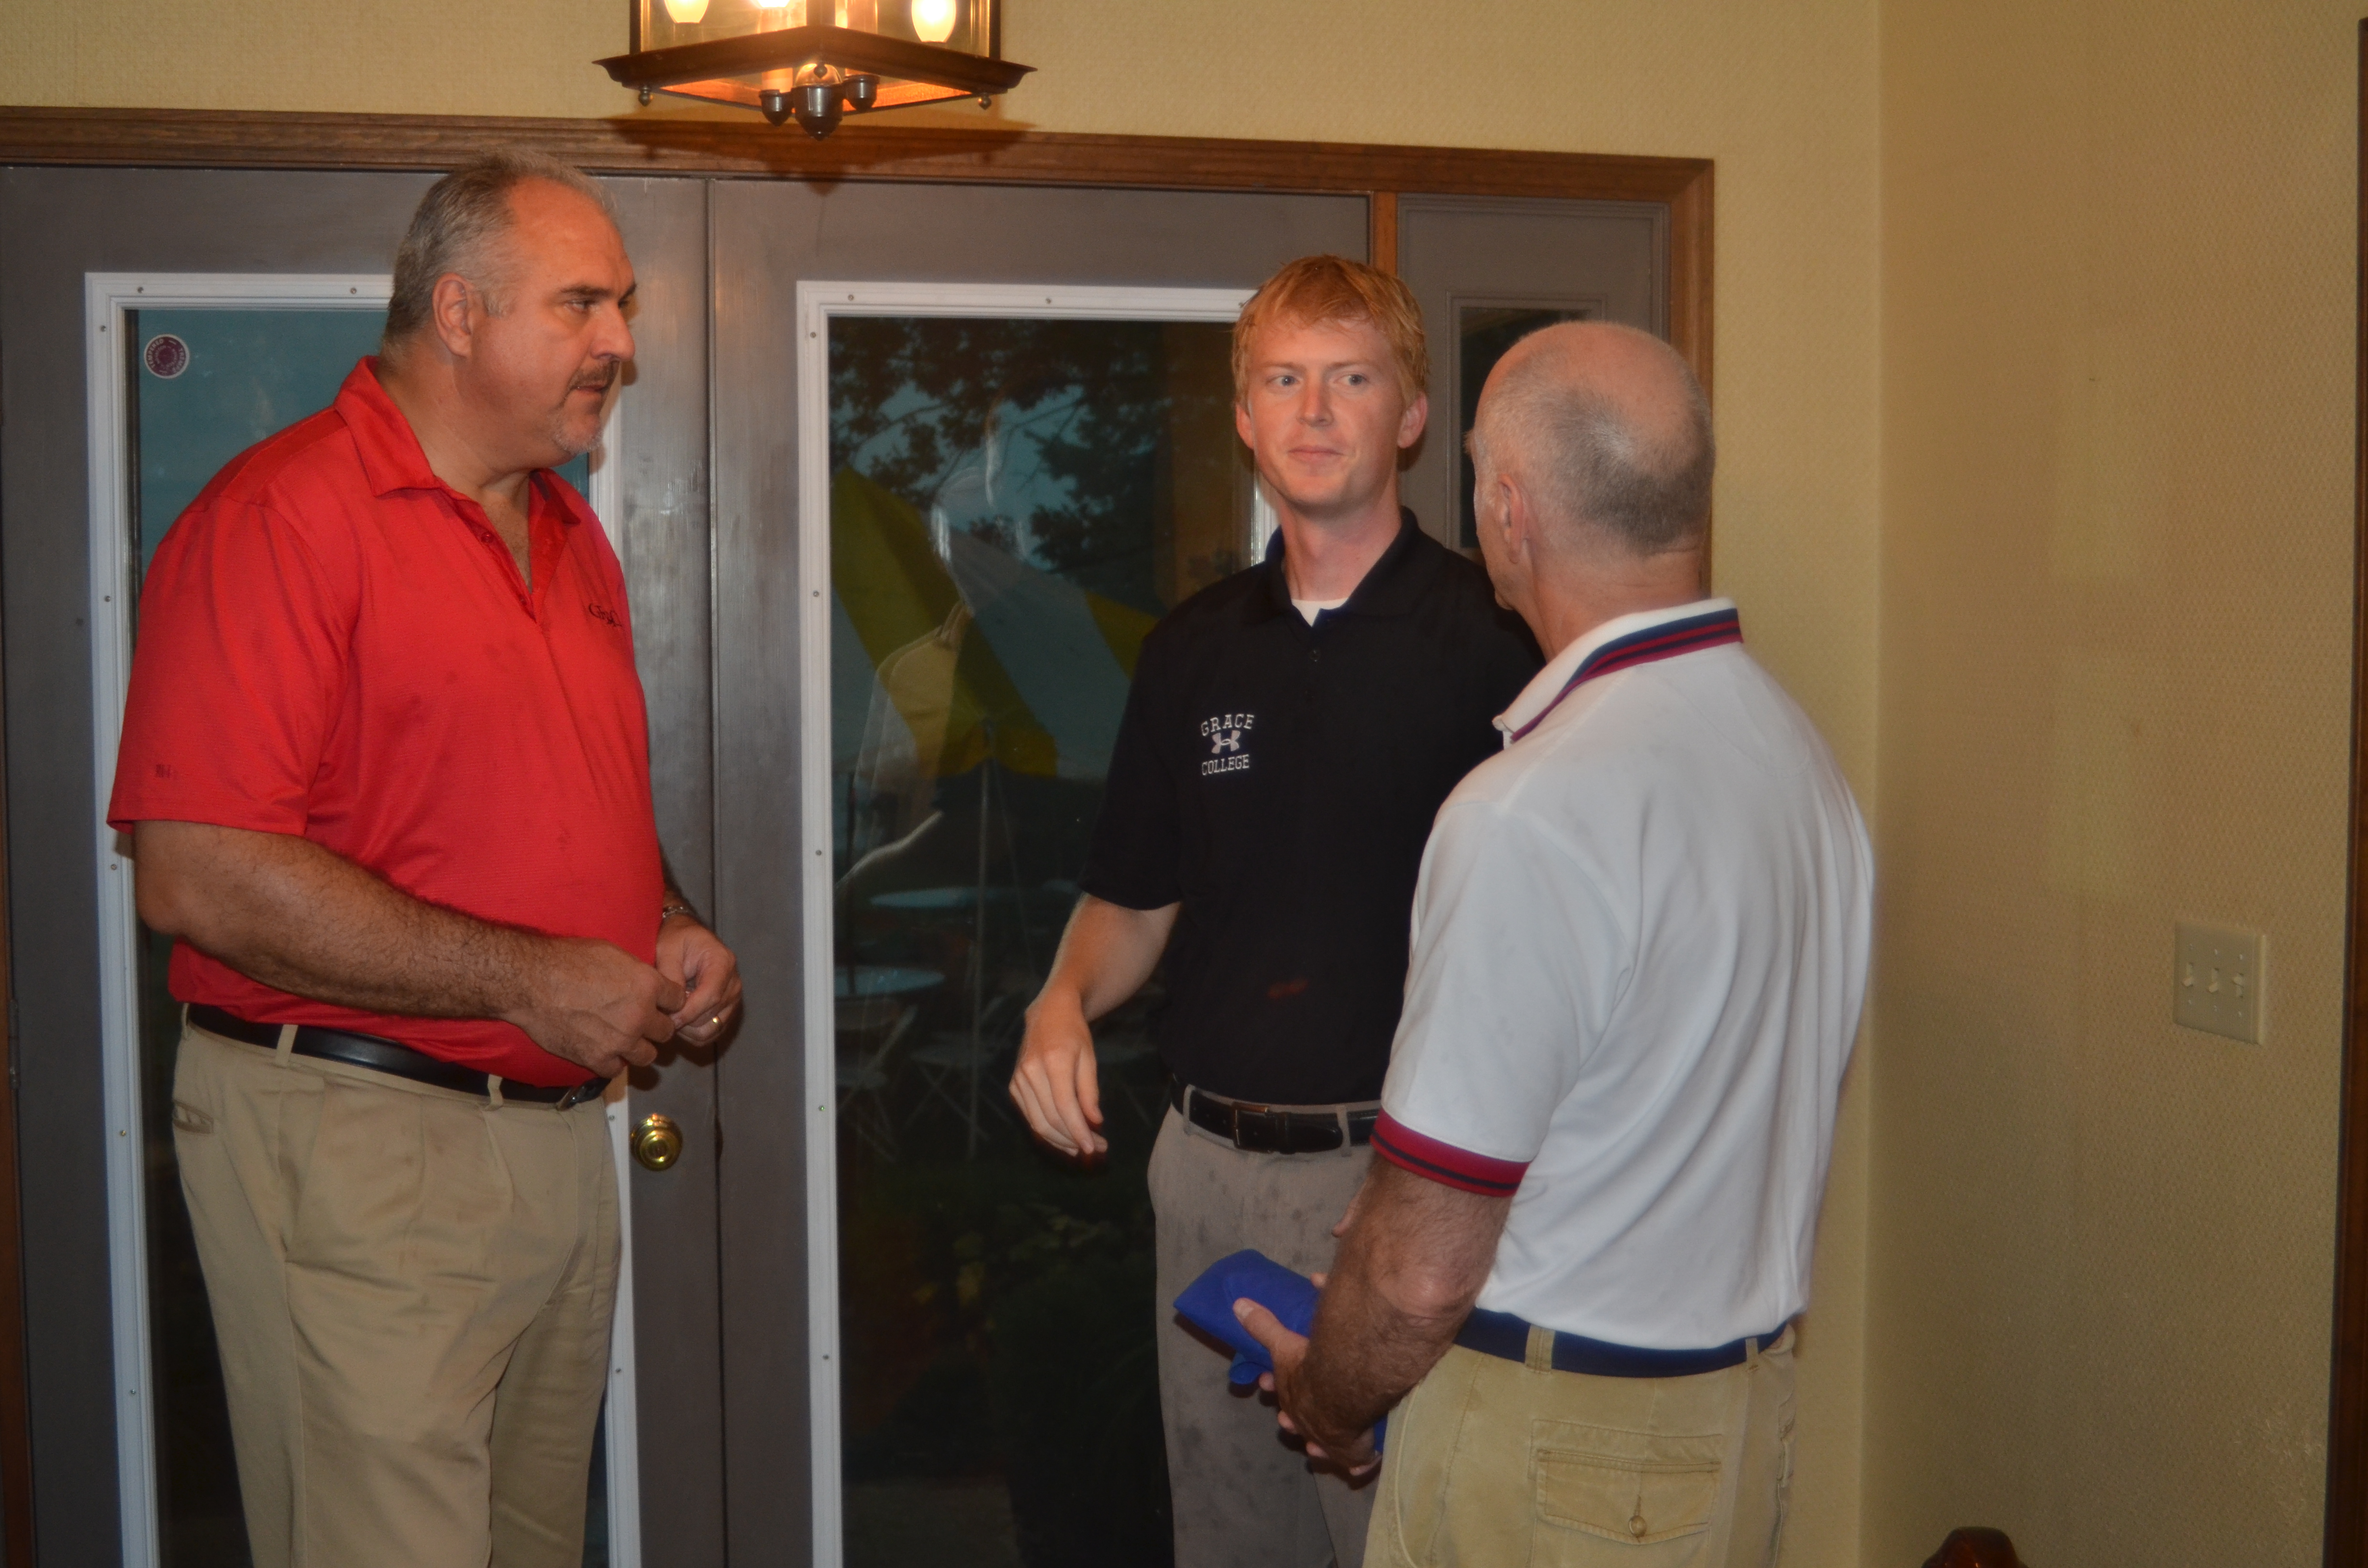 Dr. John R. Boel, vice president of advancement and chief advancement officer, left, and Dr. Nate Bosch, assistant professor of environmental biology and director of Kosciusko Lake and Stream water quality project, discuss projects and programs with Al Tehan, at a reception Saturday evening. An early evening storm halted the reception and tour of the Doug Anderson property and moved the event indoors. (Photo by Deb Patterson)